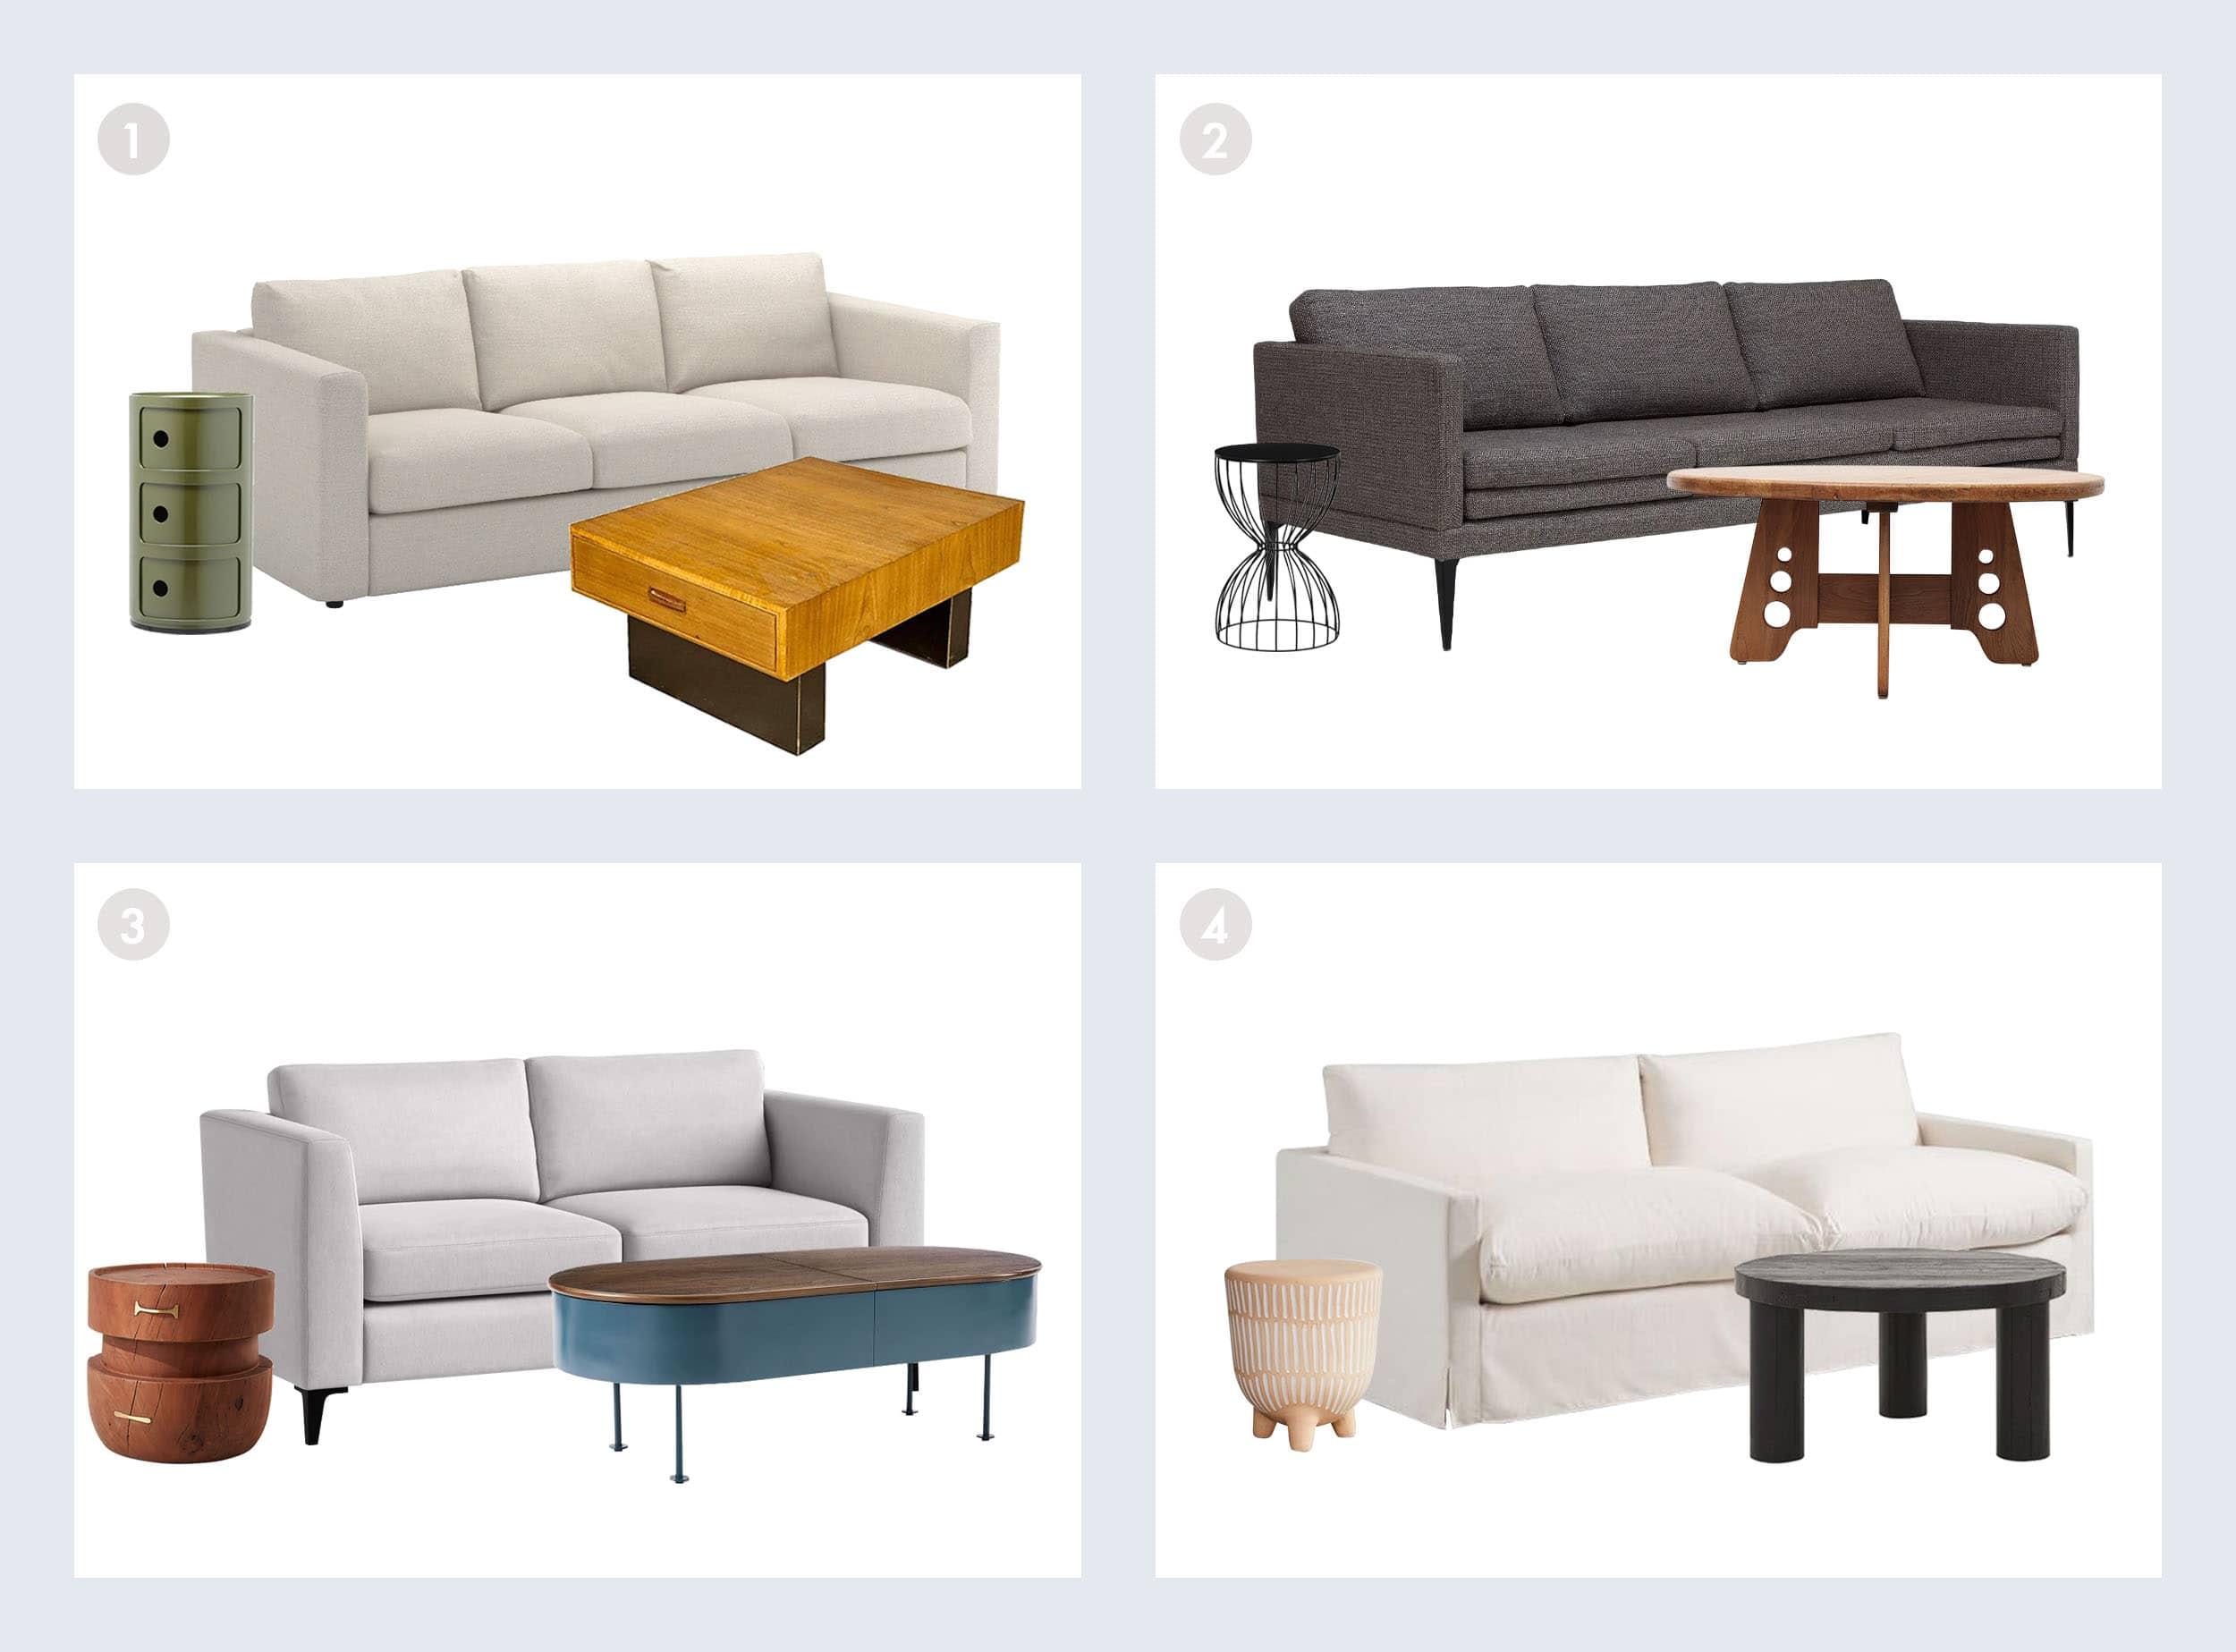 unique coffee side tables to save